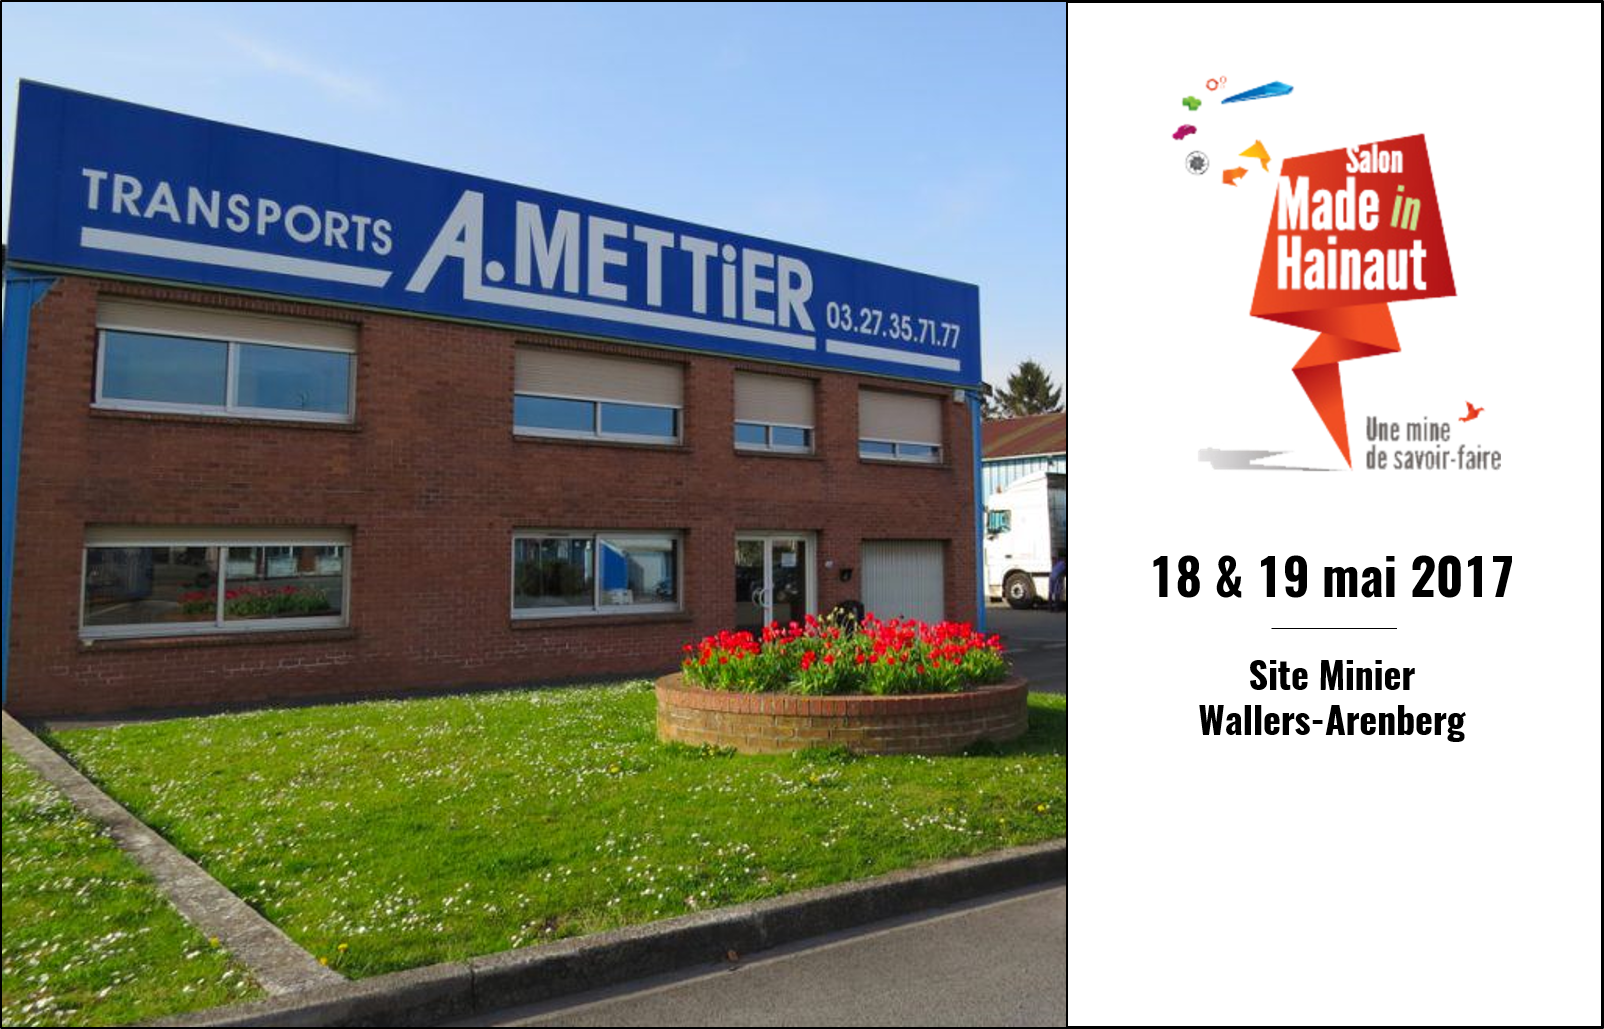 A.Mettier présent au salon Made In Hainaut